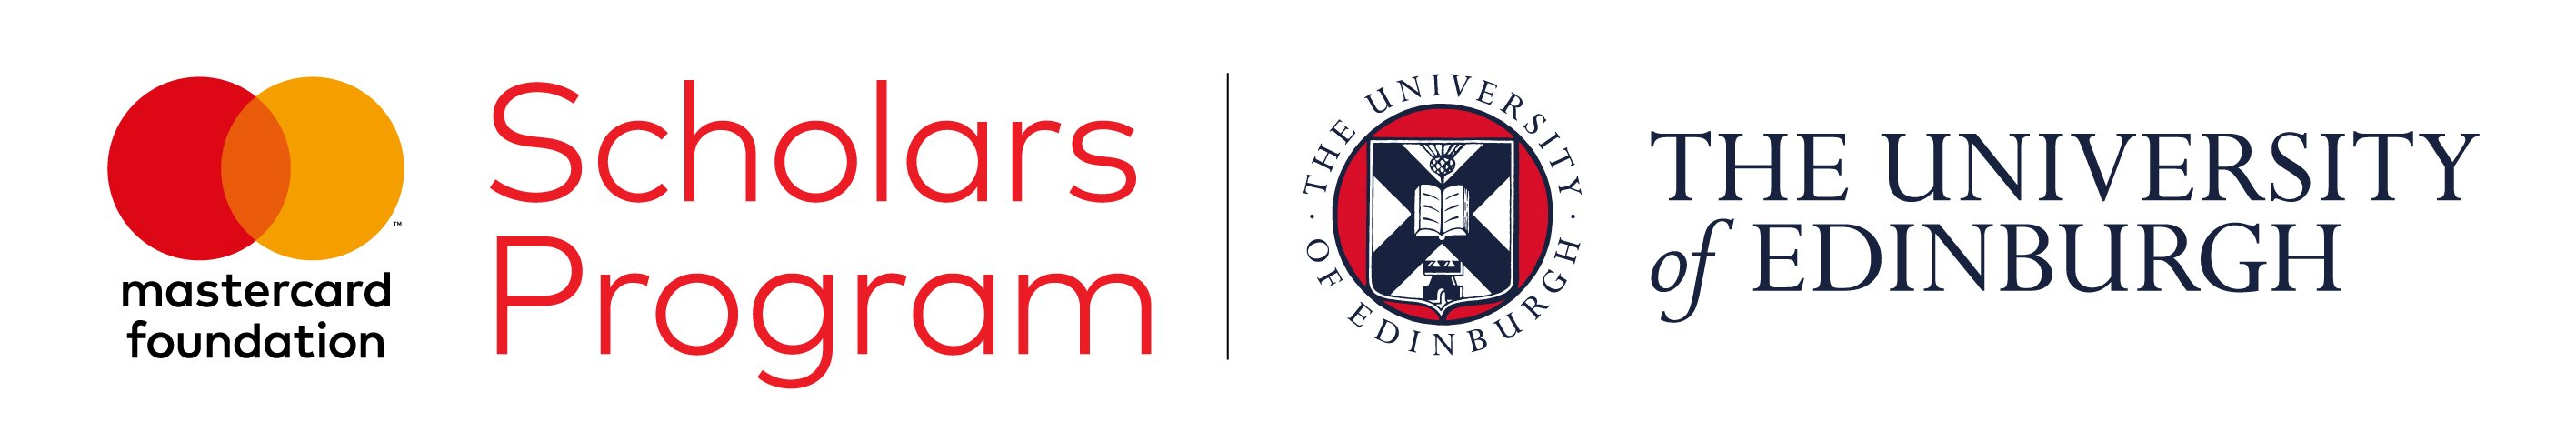 Mastercard Foundation Undergraduate Scholars Program at the University of Edinburgh